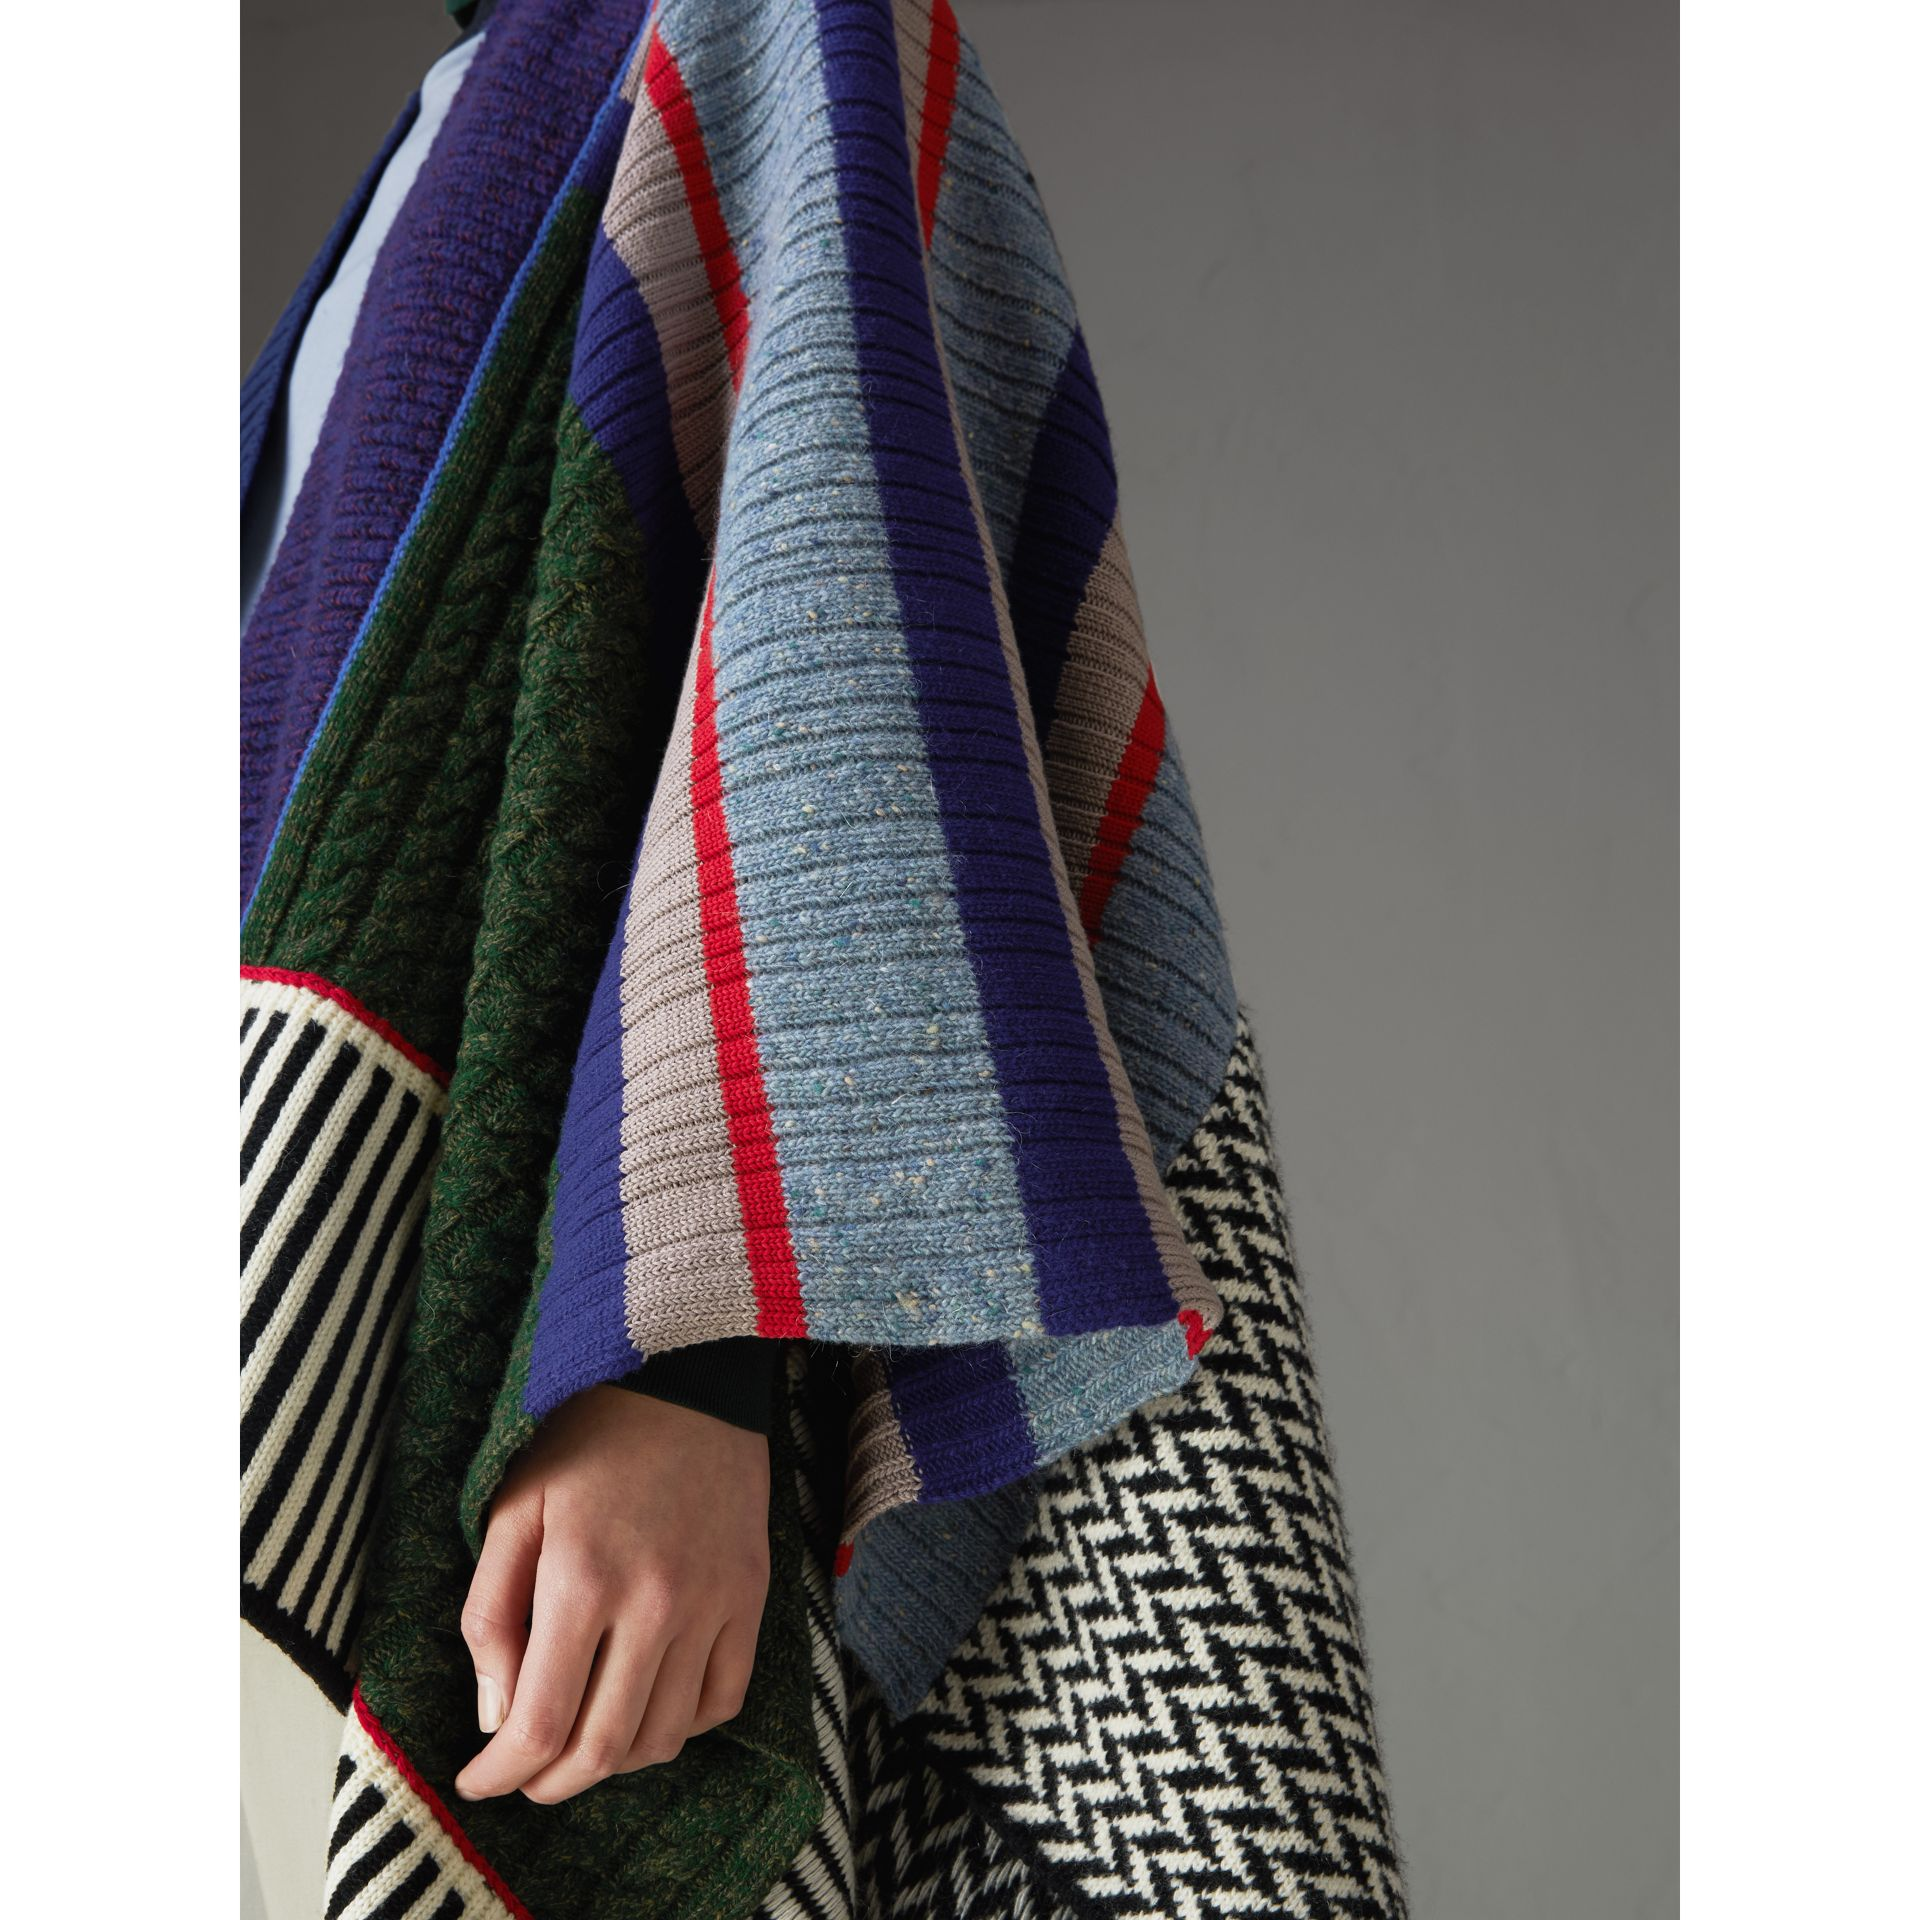 Wool Cashmere Blend Patchwork Poncho in Multicolour - Women | Burberry United States - gallery image 1